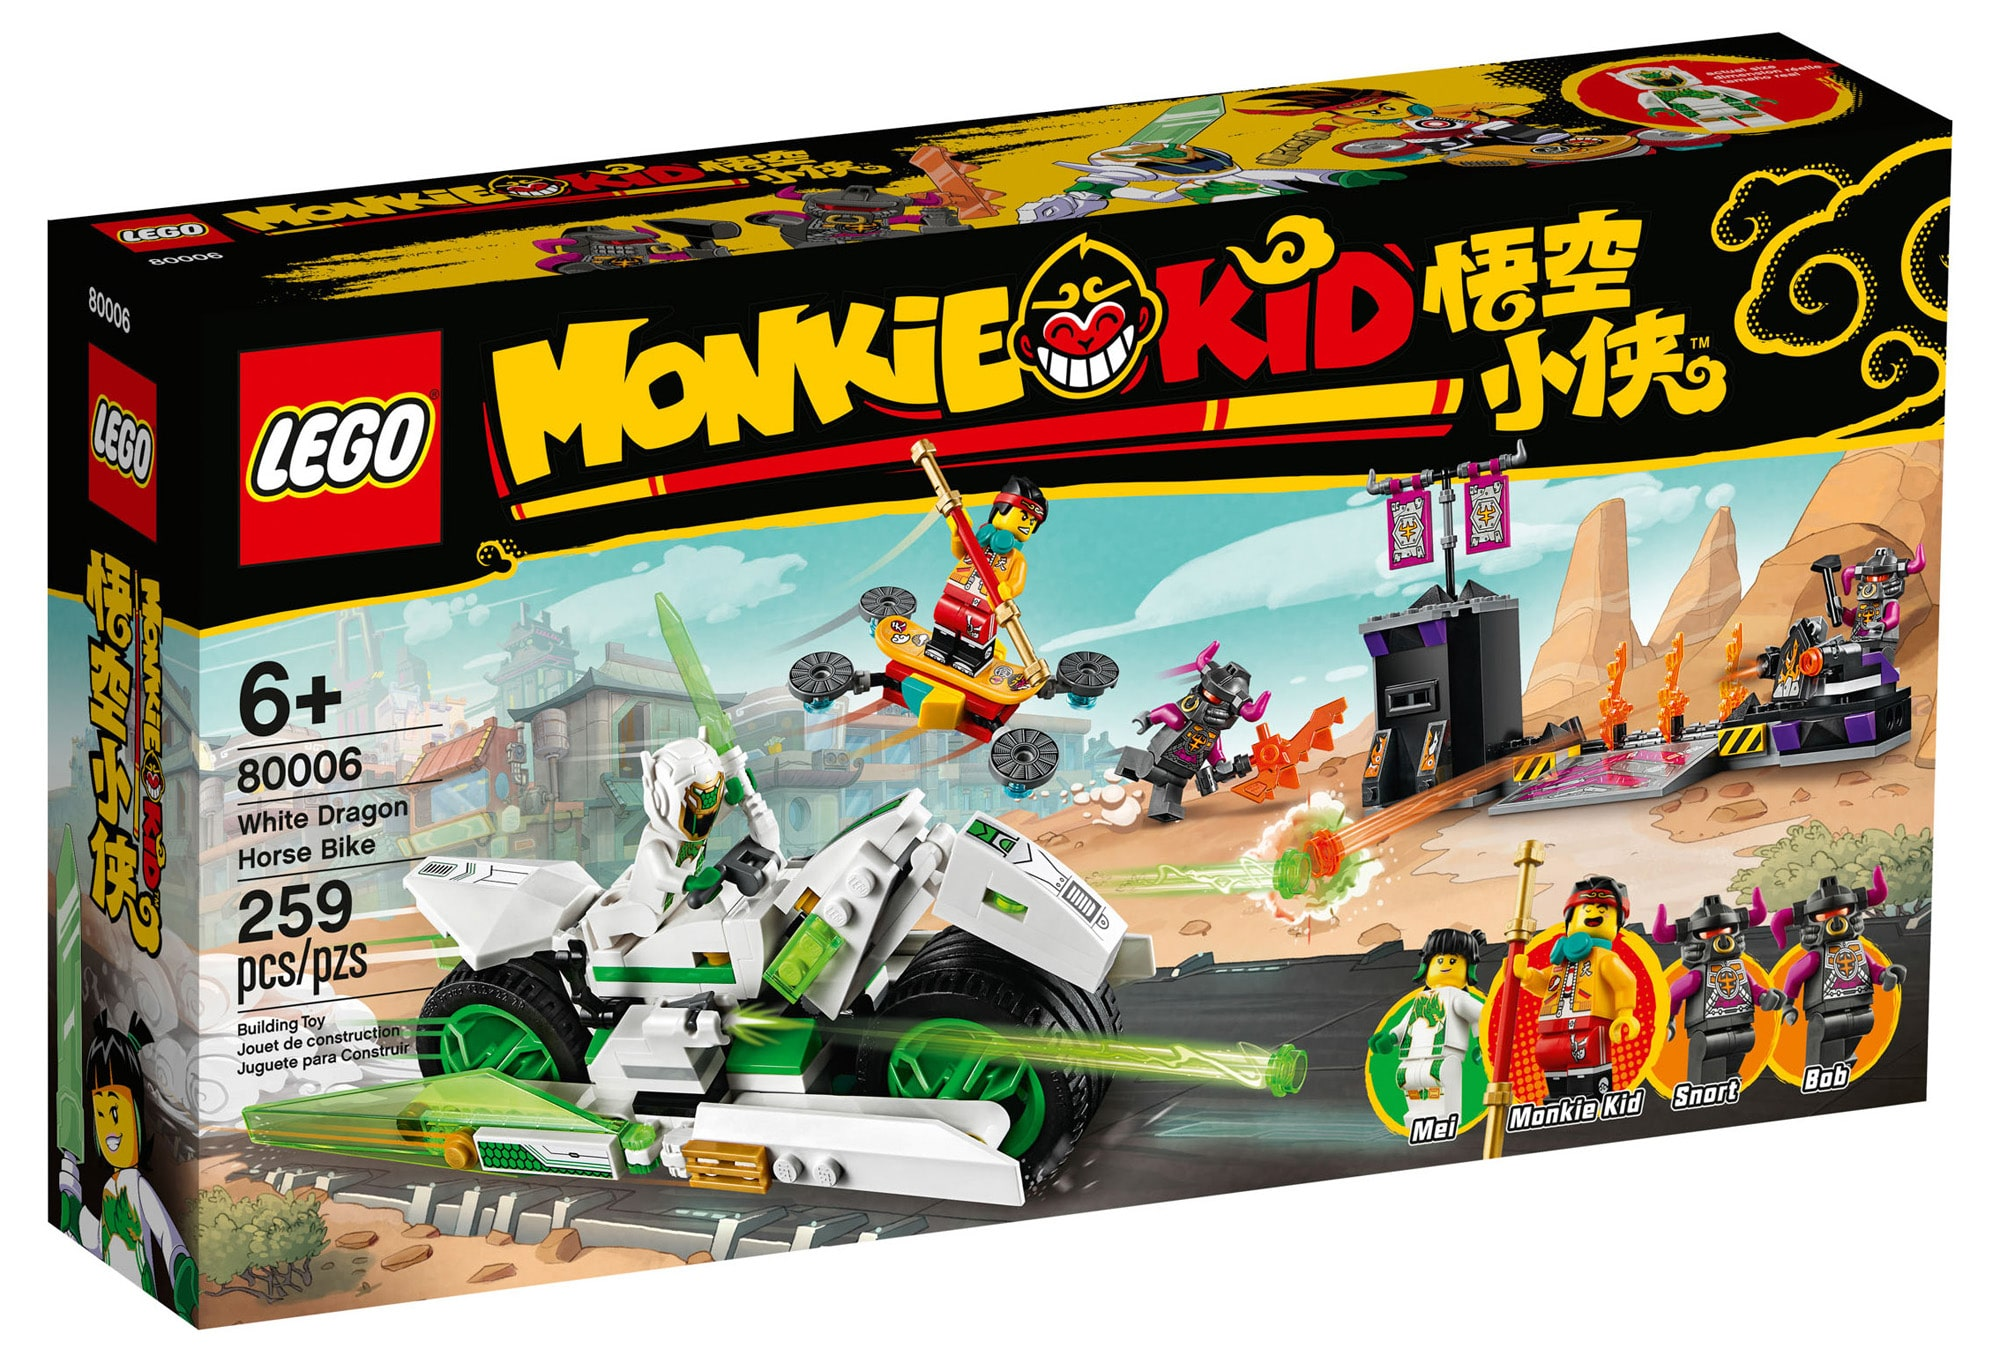 LEGO Monkie Kid 80006 White Dragon Horse Bike